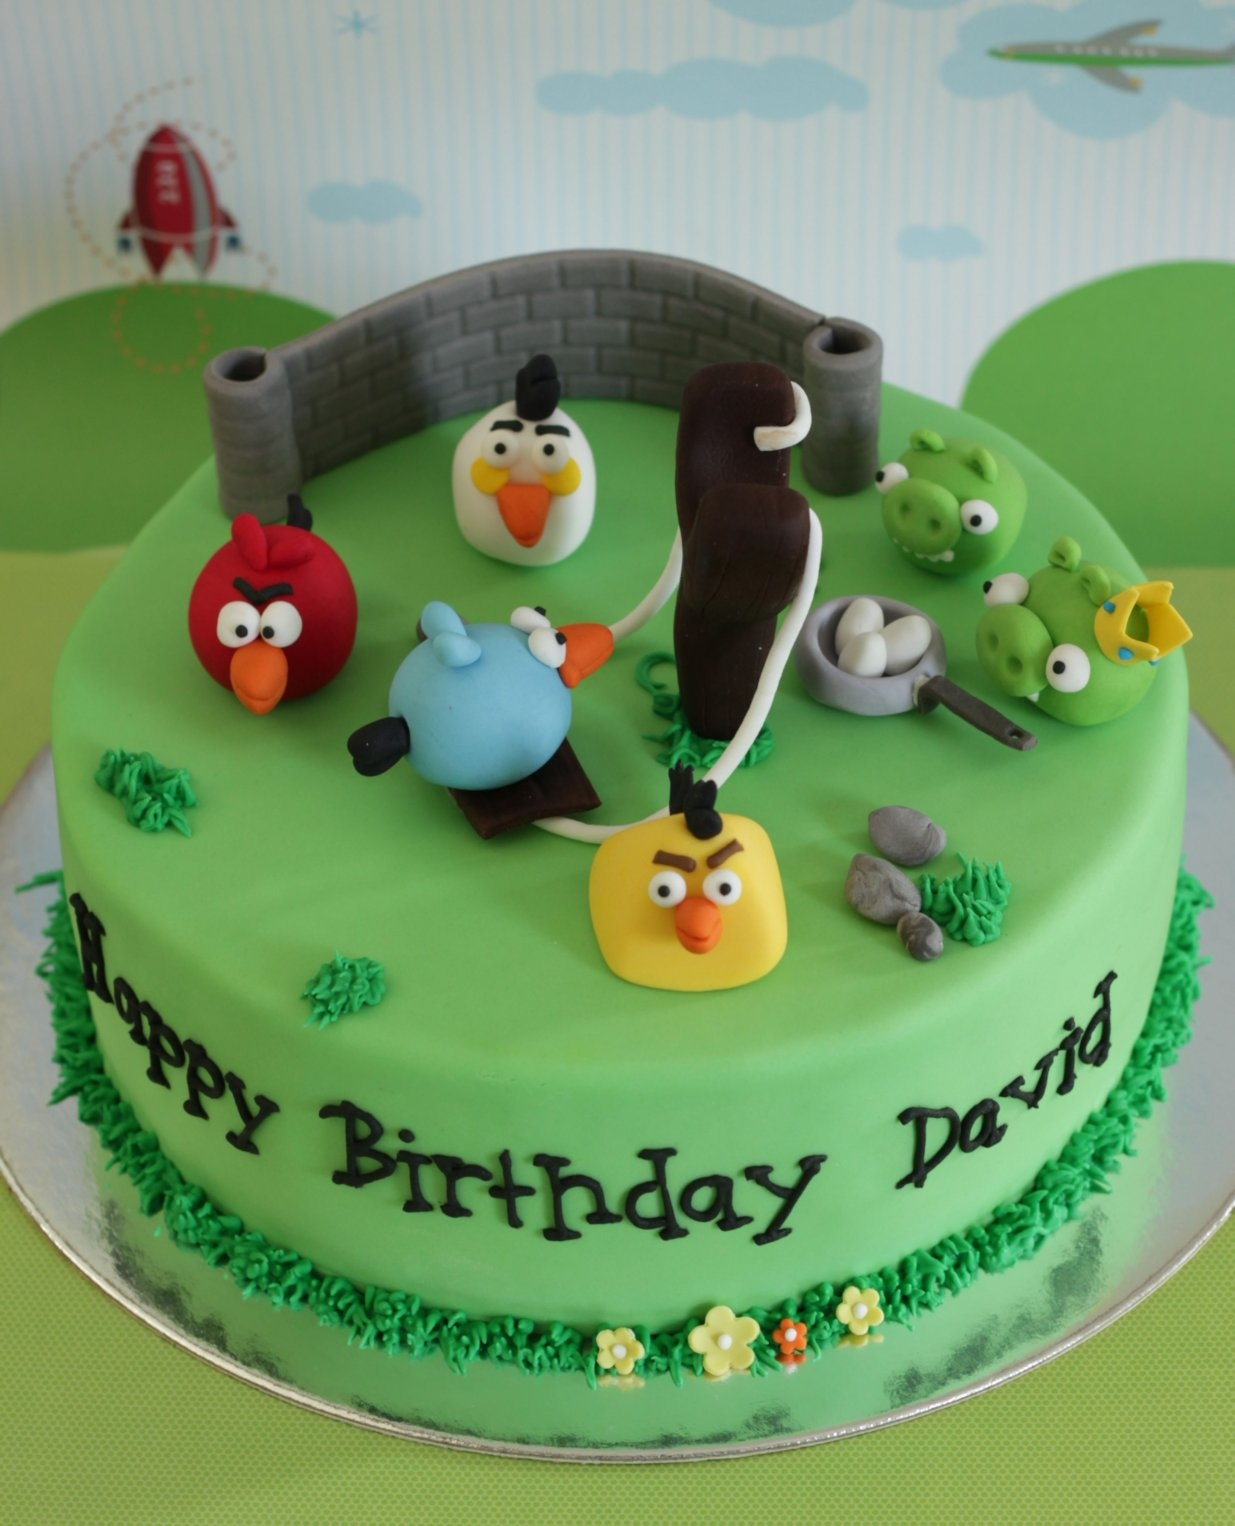 Decorada's photos in 2011 Angry Birds Cake Contest